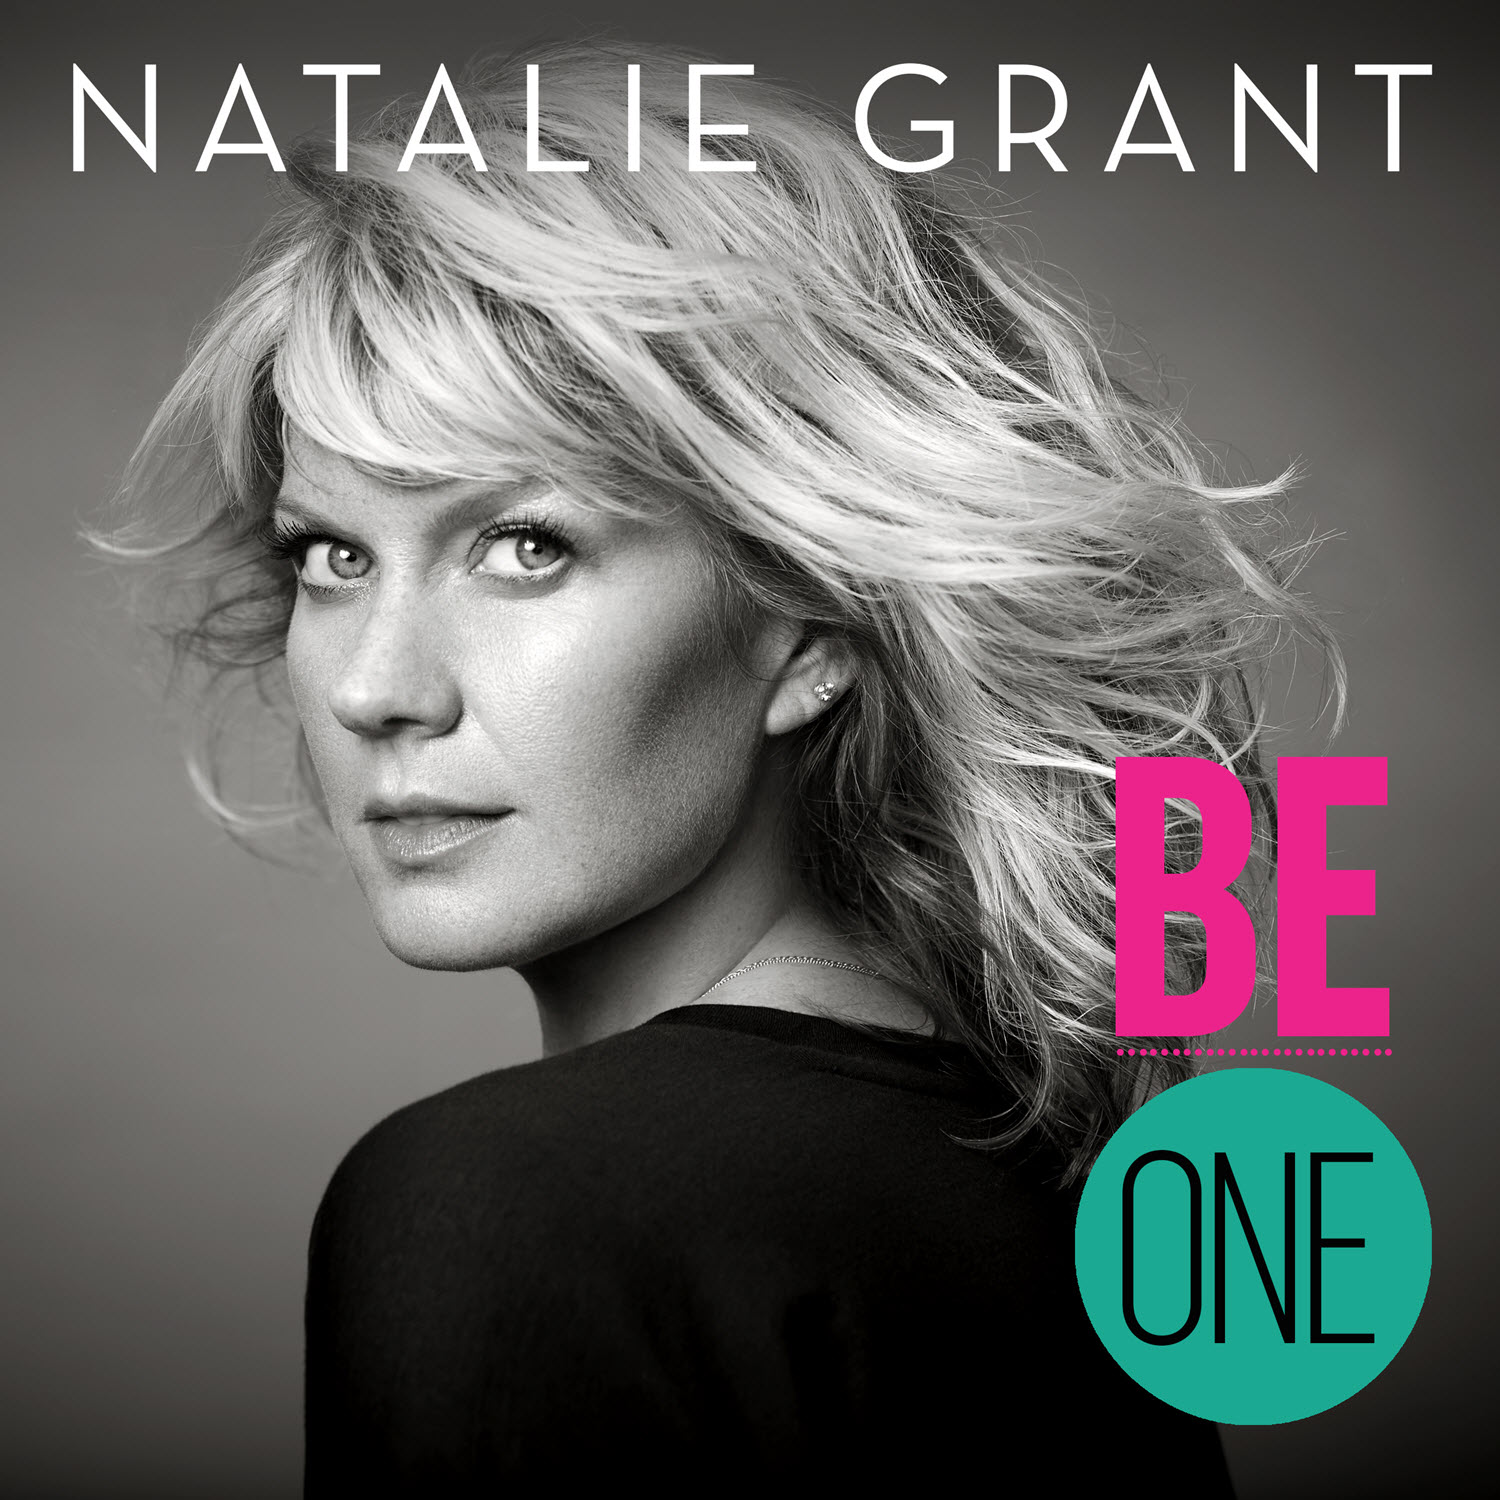 Be One (Single)